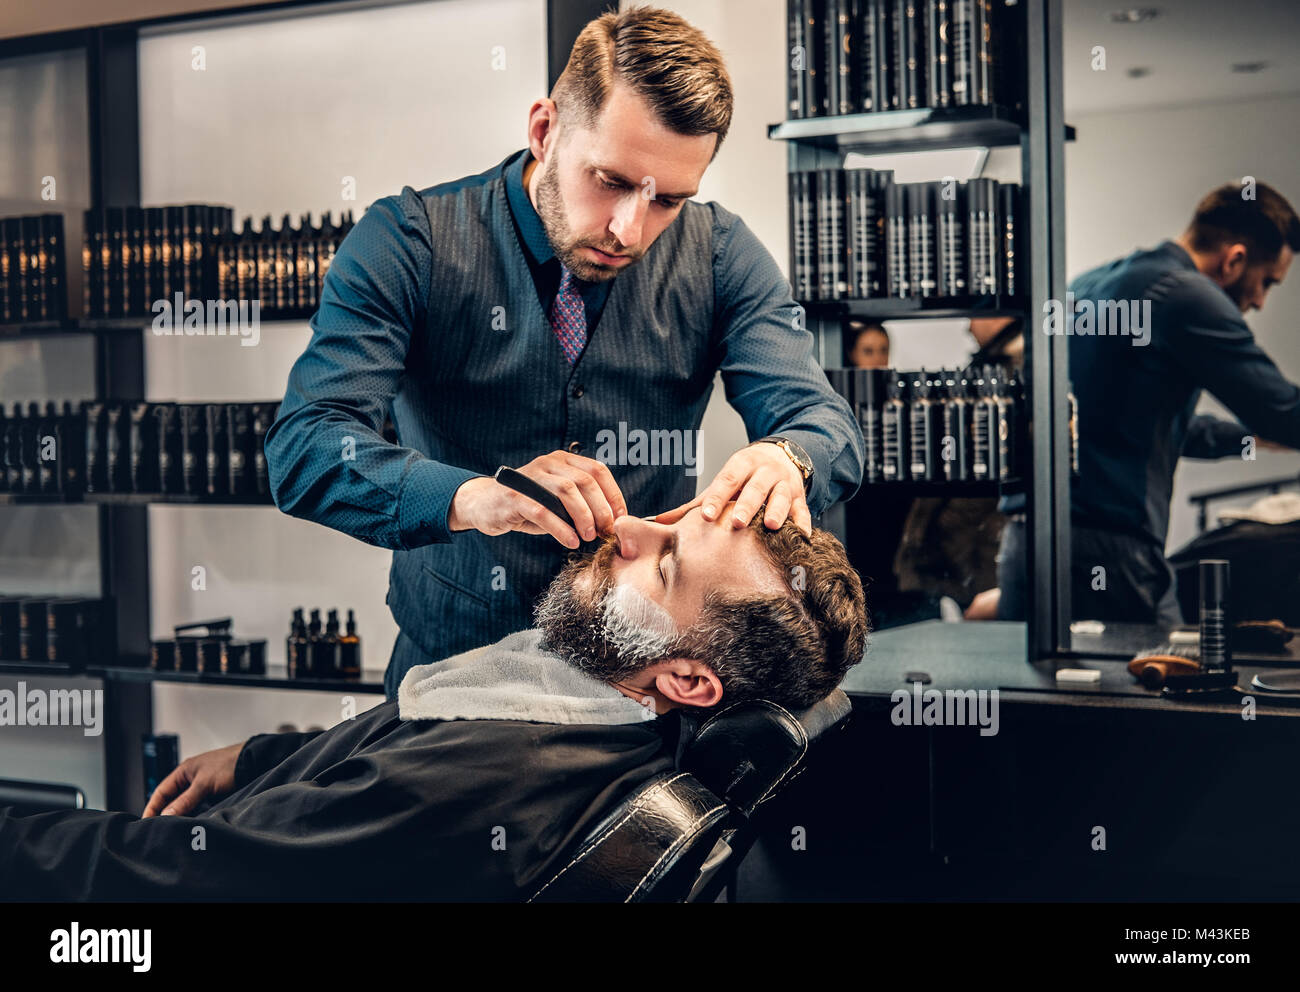 Stylish barber grooming a man's beard in a saloon. - Stock Image